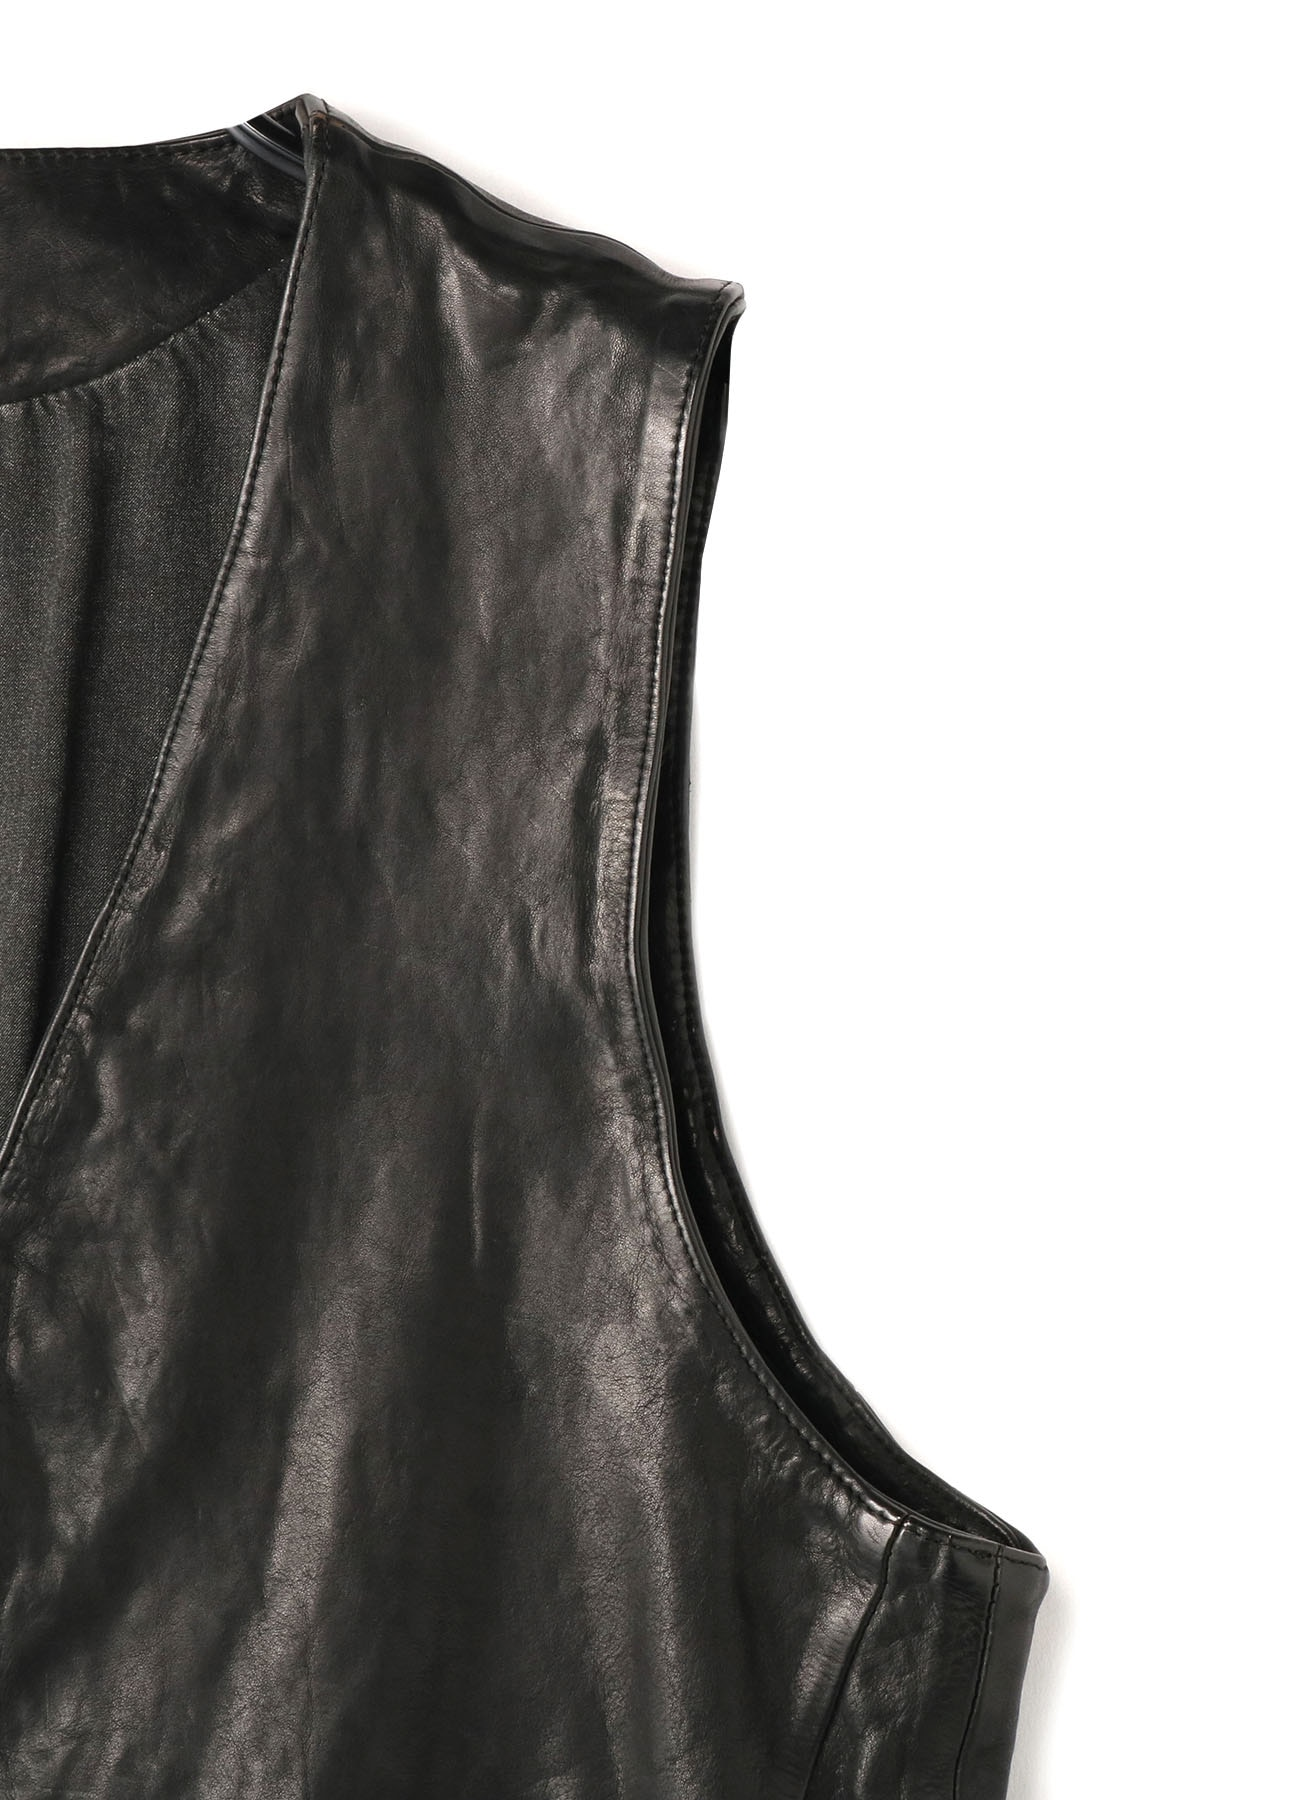 BACKLASH COWLEATHER DYEING VEST